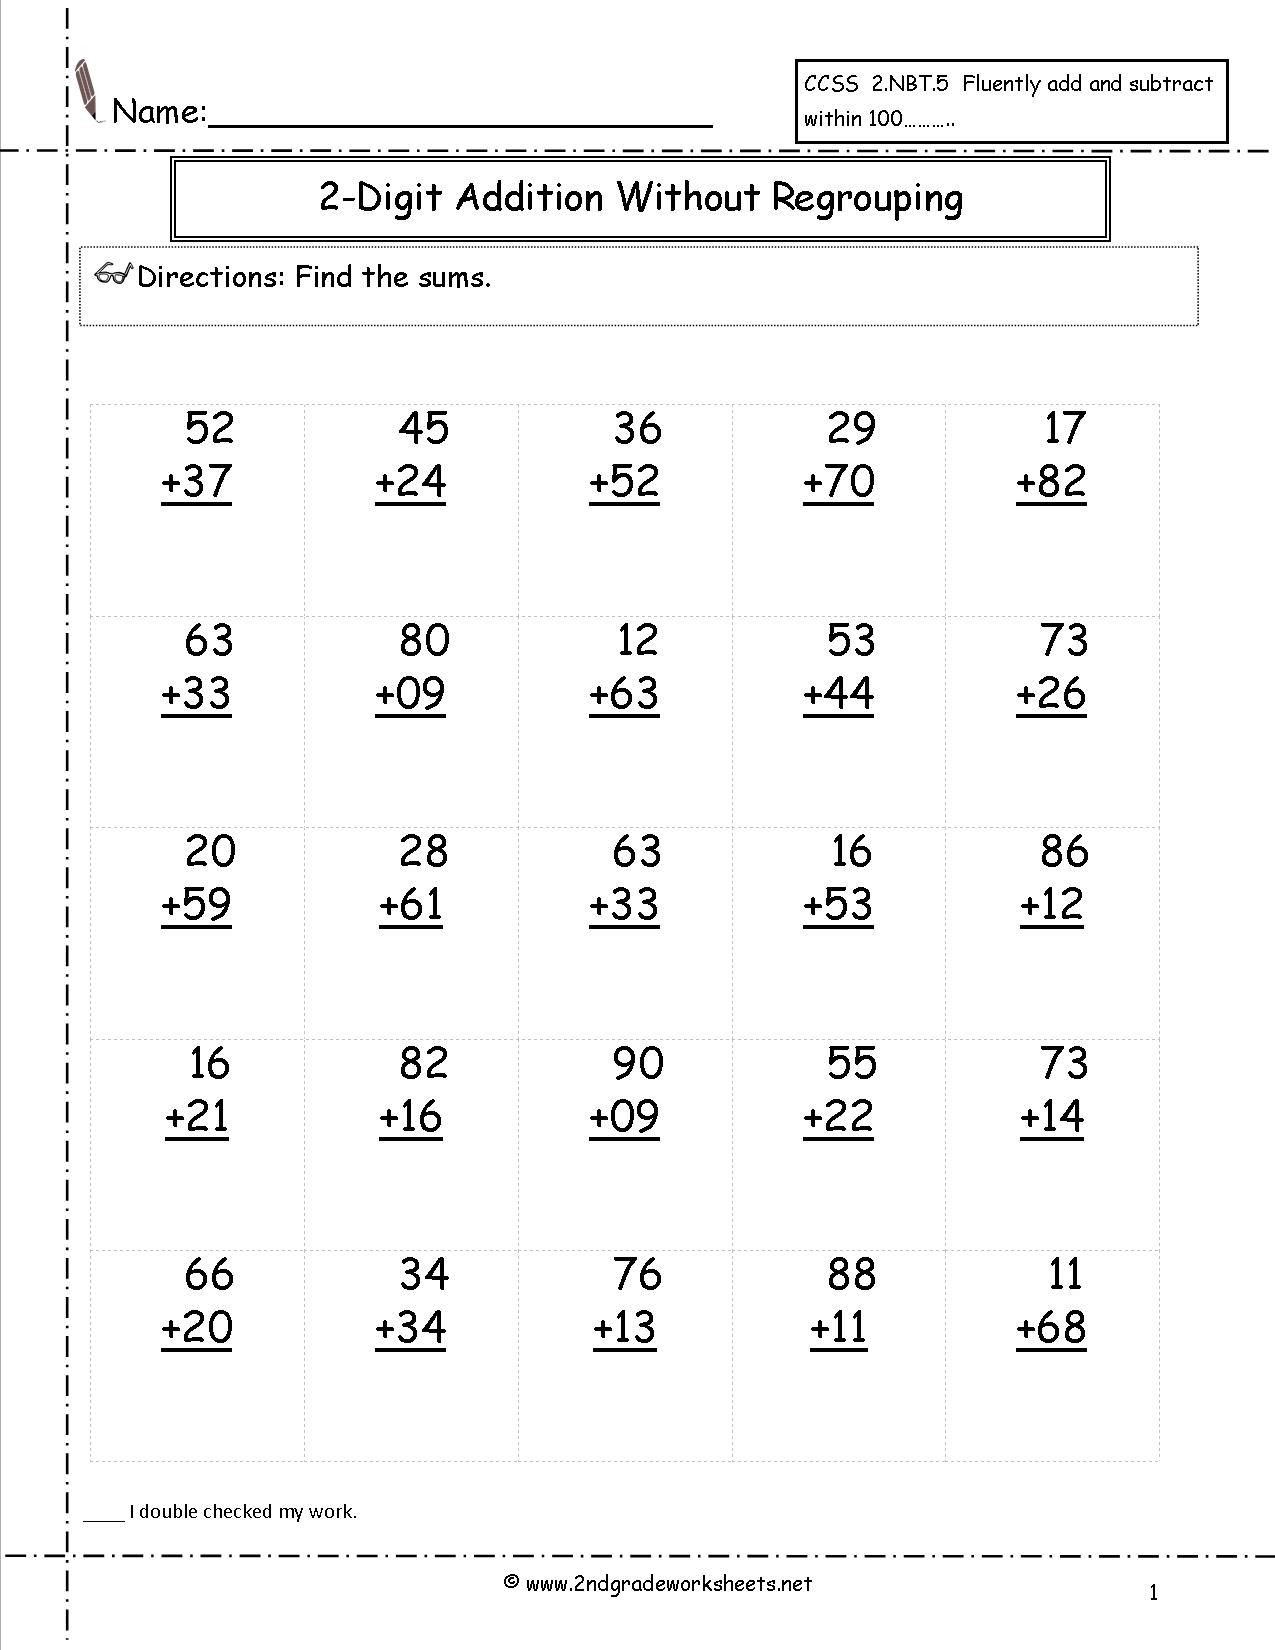 Repeated Addition Worksheets 2nd Grade Free Addition Printable Worksheets Two Digit with No Fun is